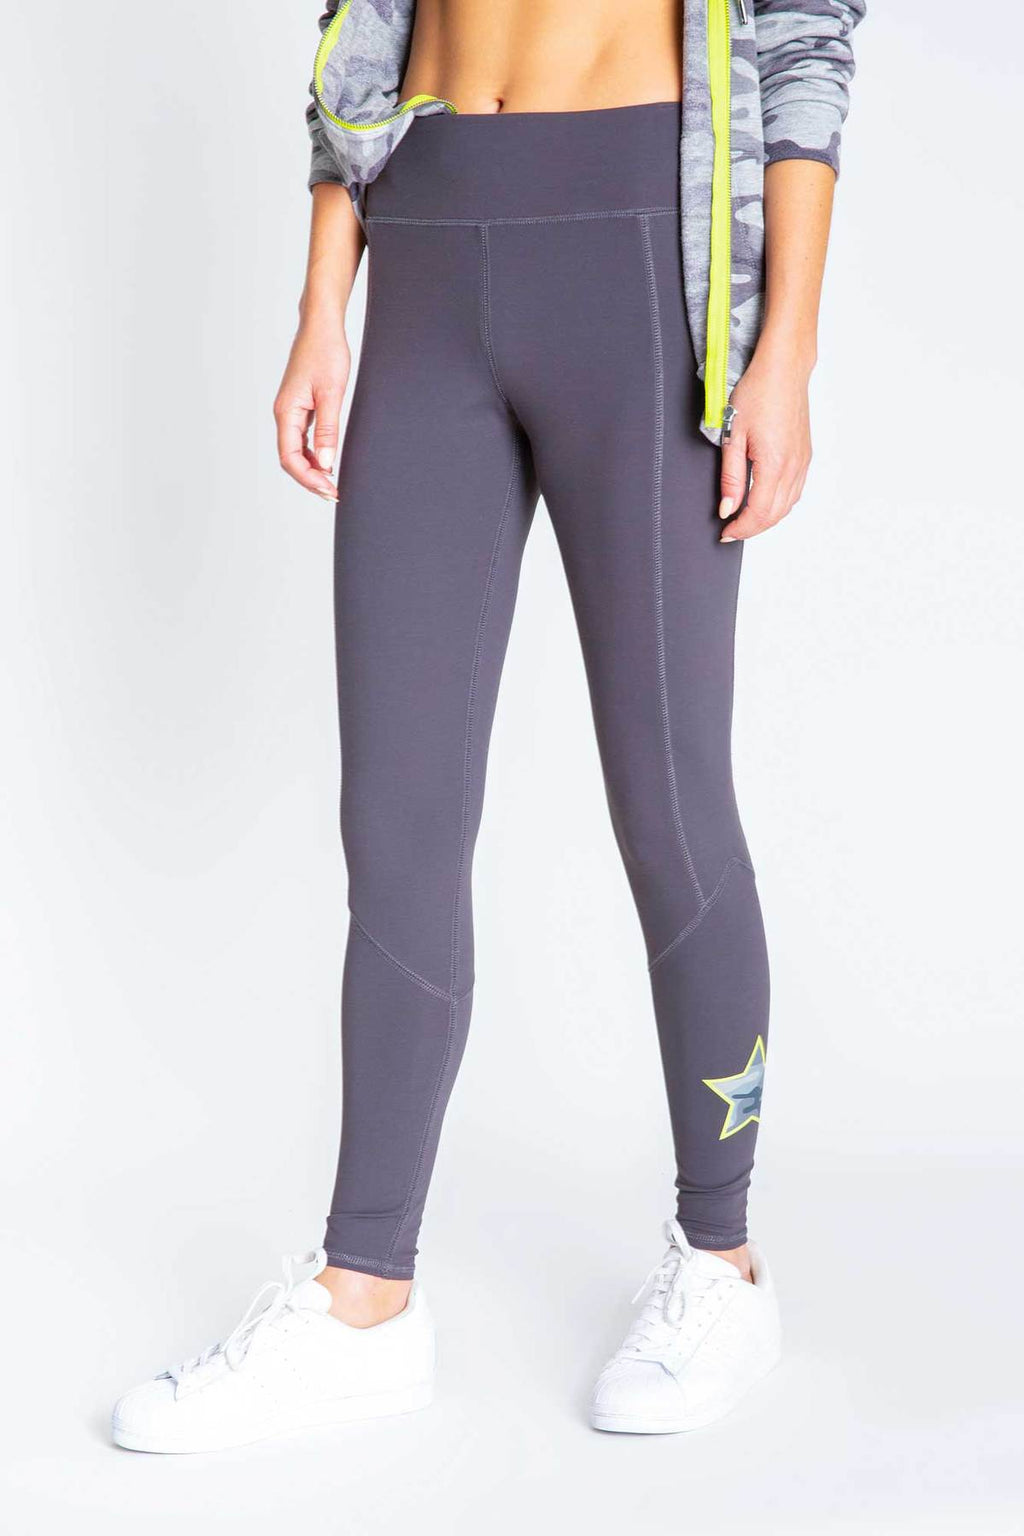 leggings - EYE ON FASHION BOUTIQUE